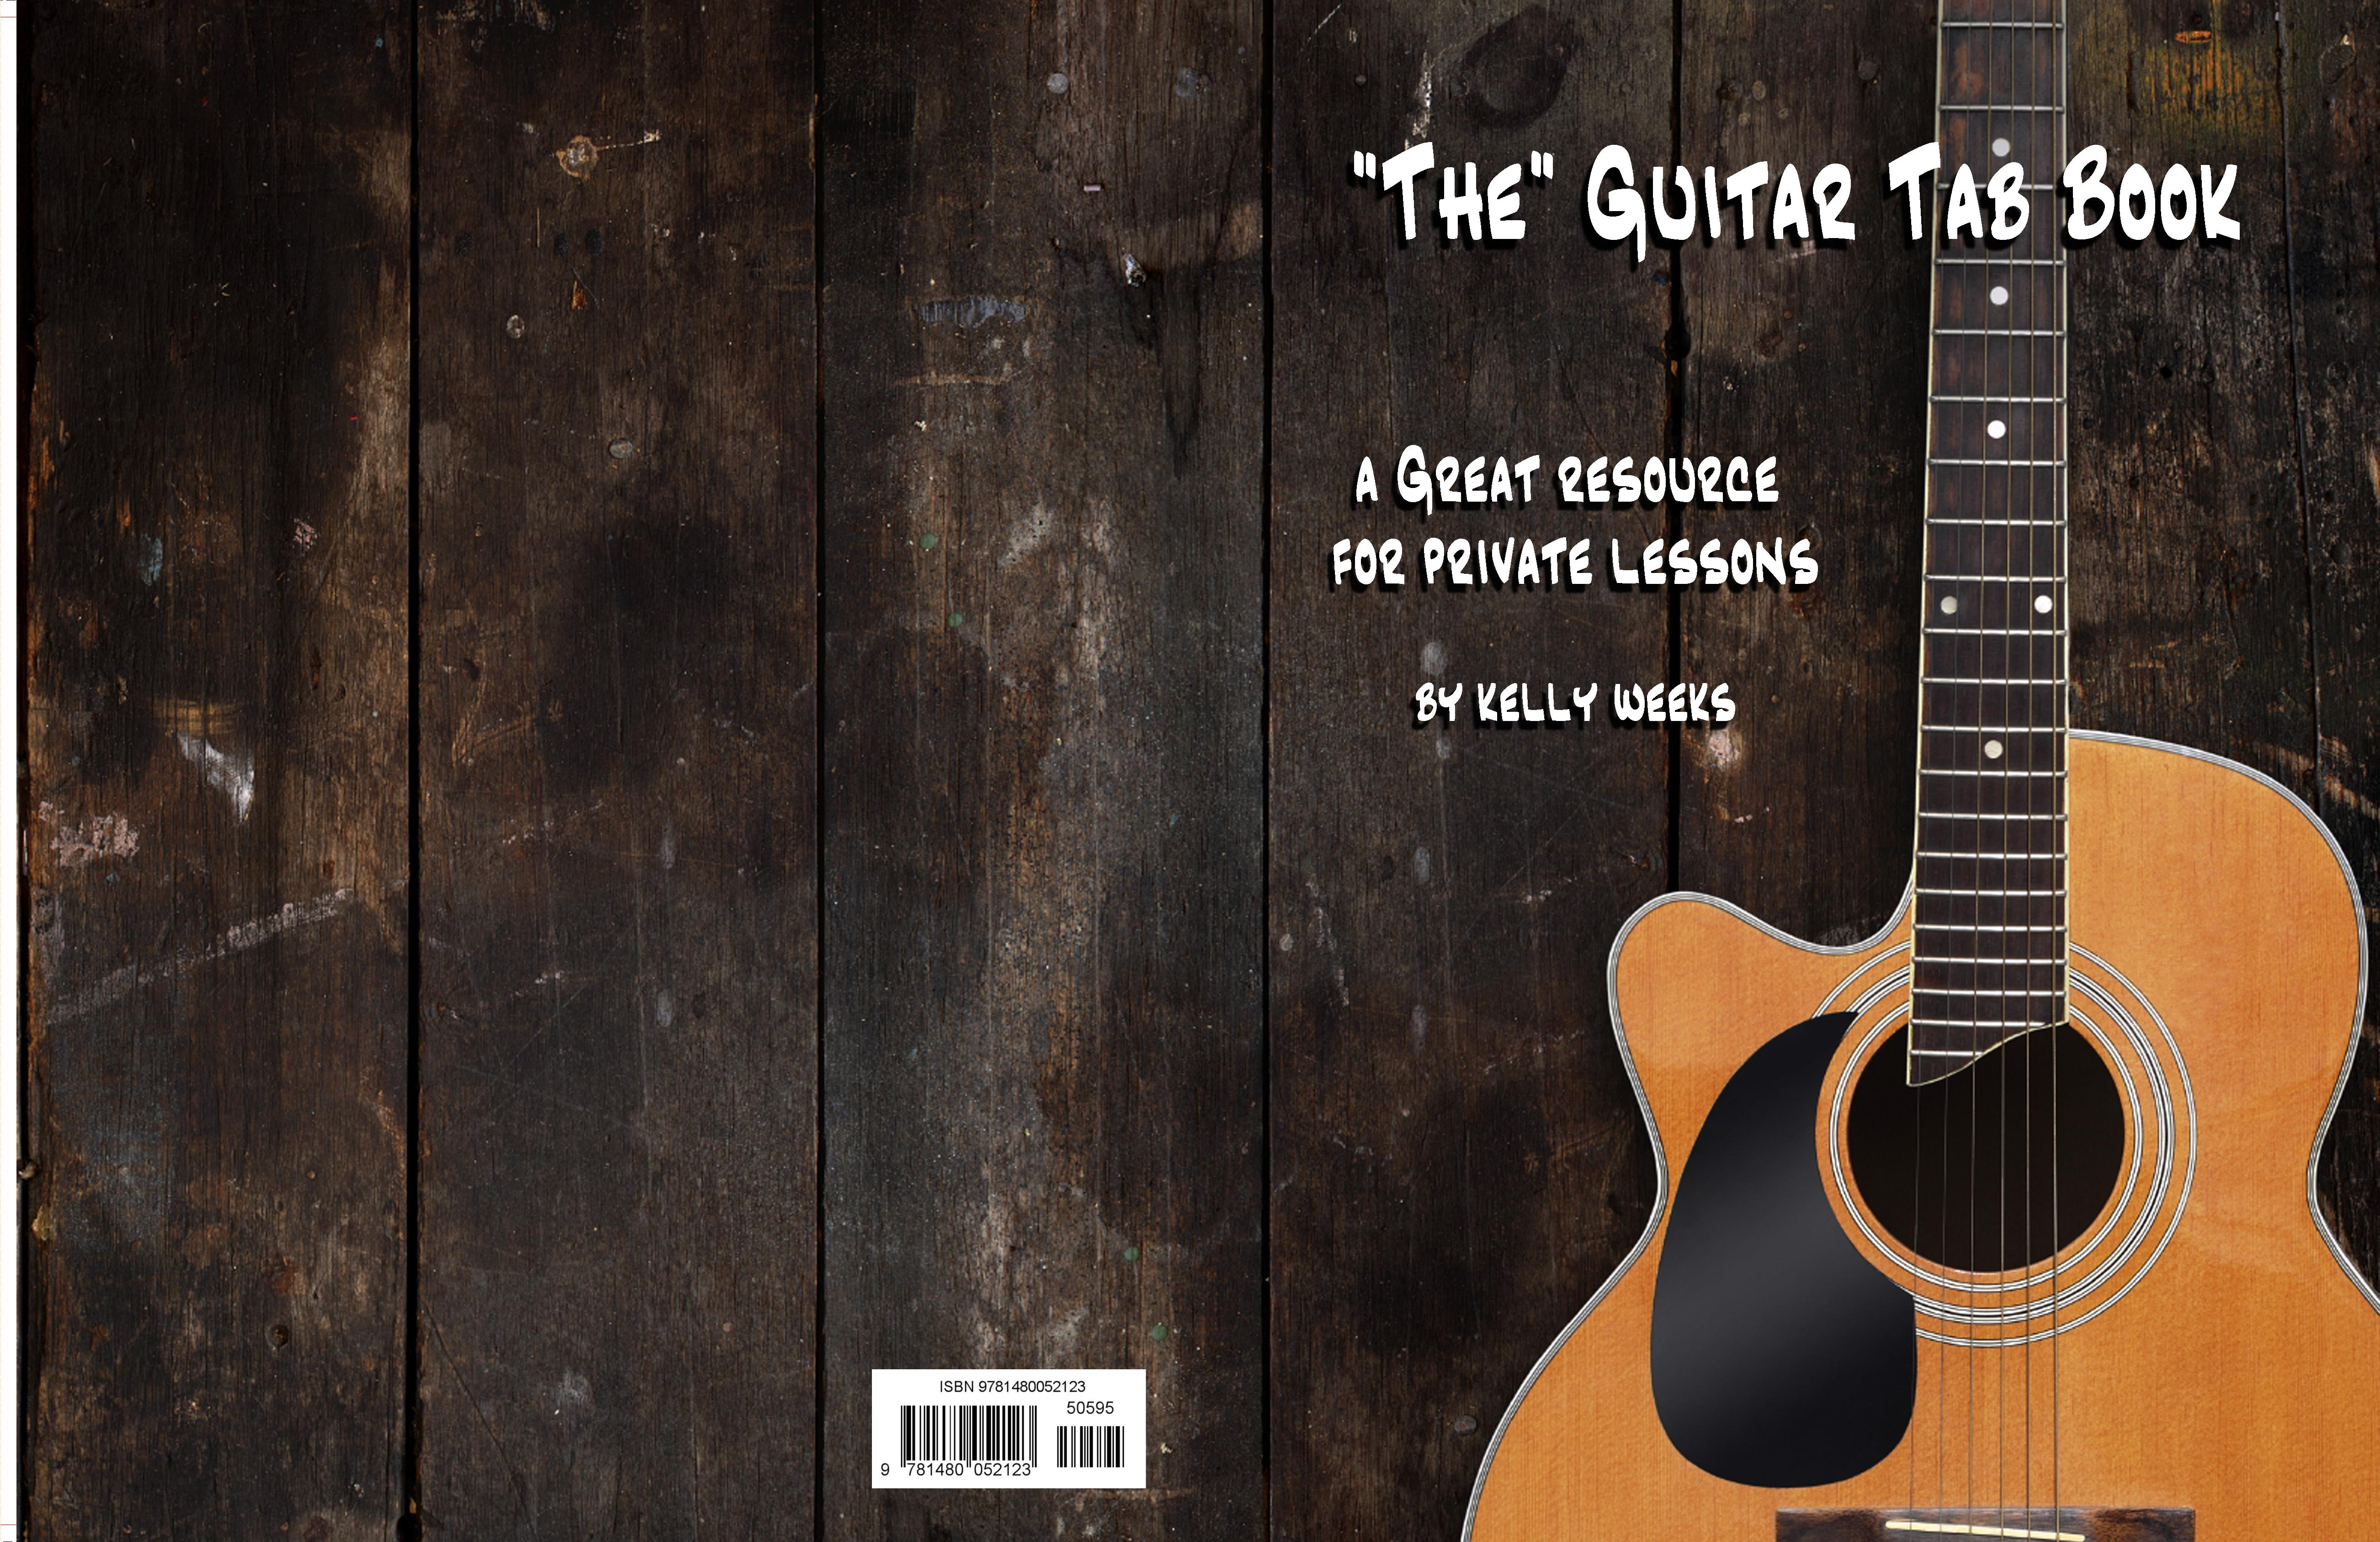 Food Book Cover Guitar : The guitar tab book by kelly weeks